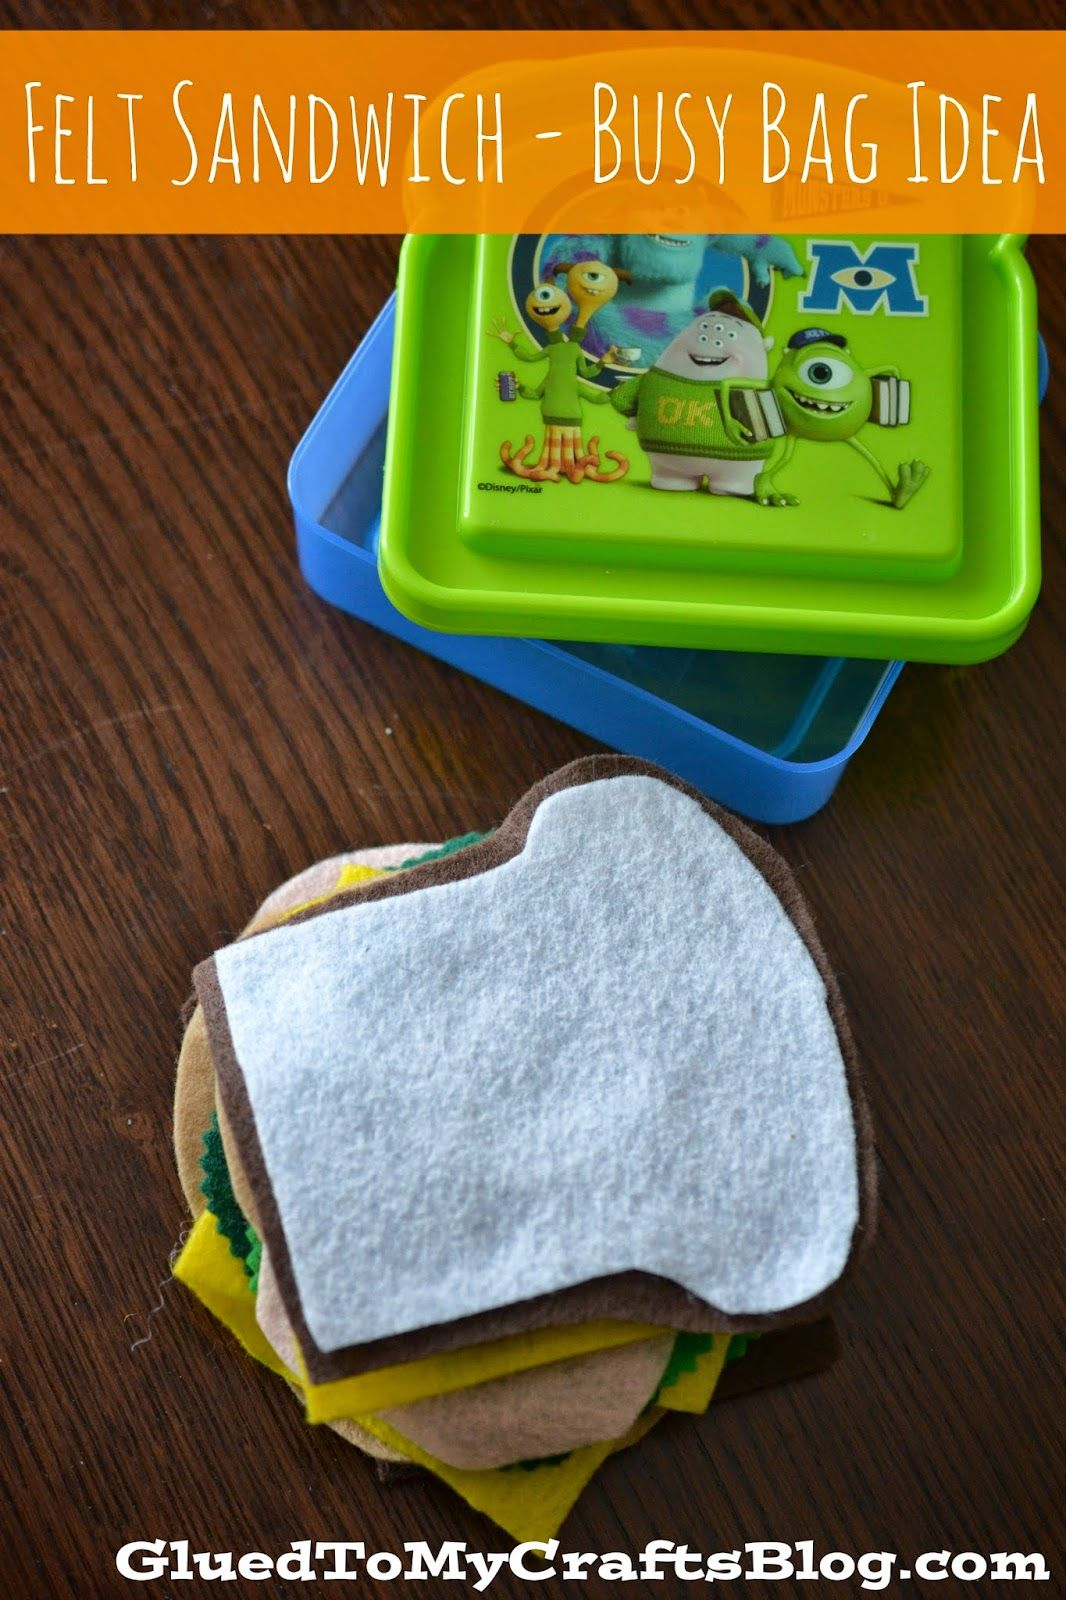 Libros Terapia Ocupacional Felt Sandwich Busy Bag Idea Bebes Ocupaditos